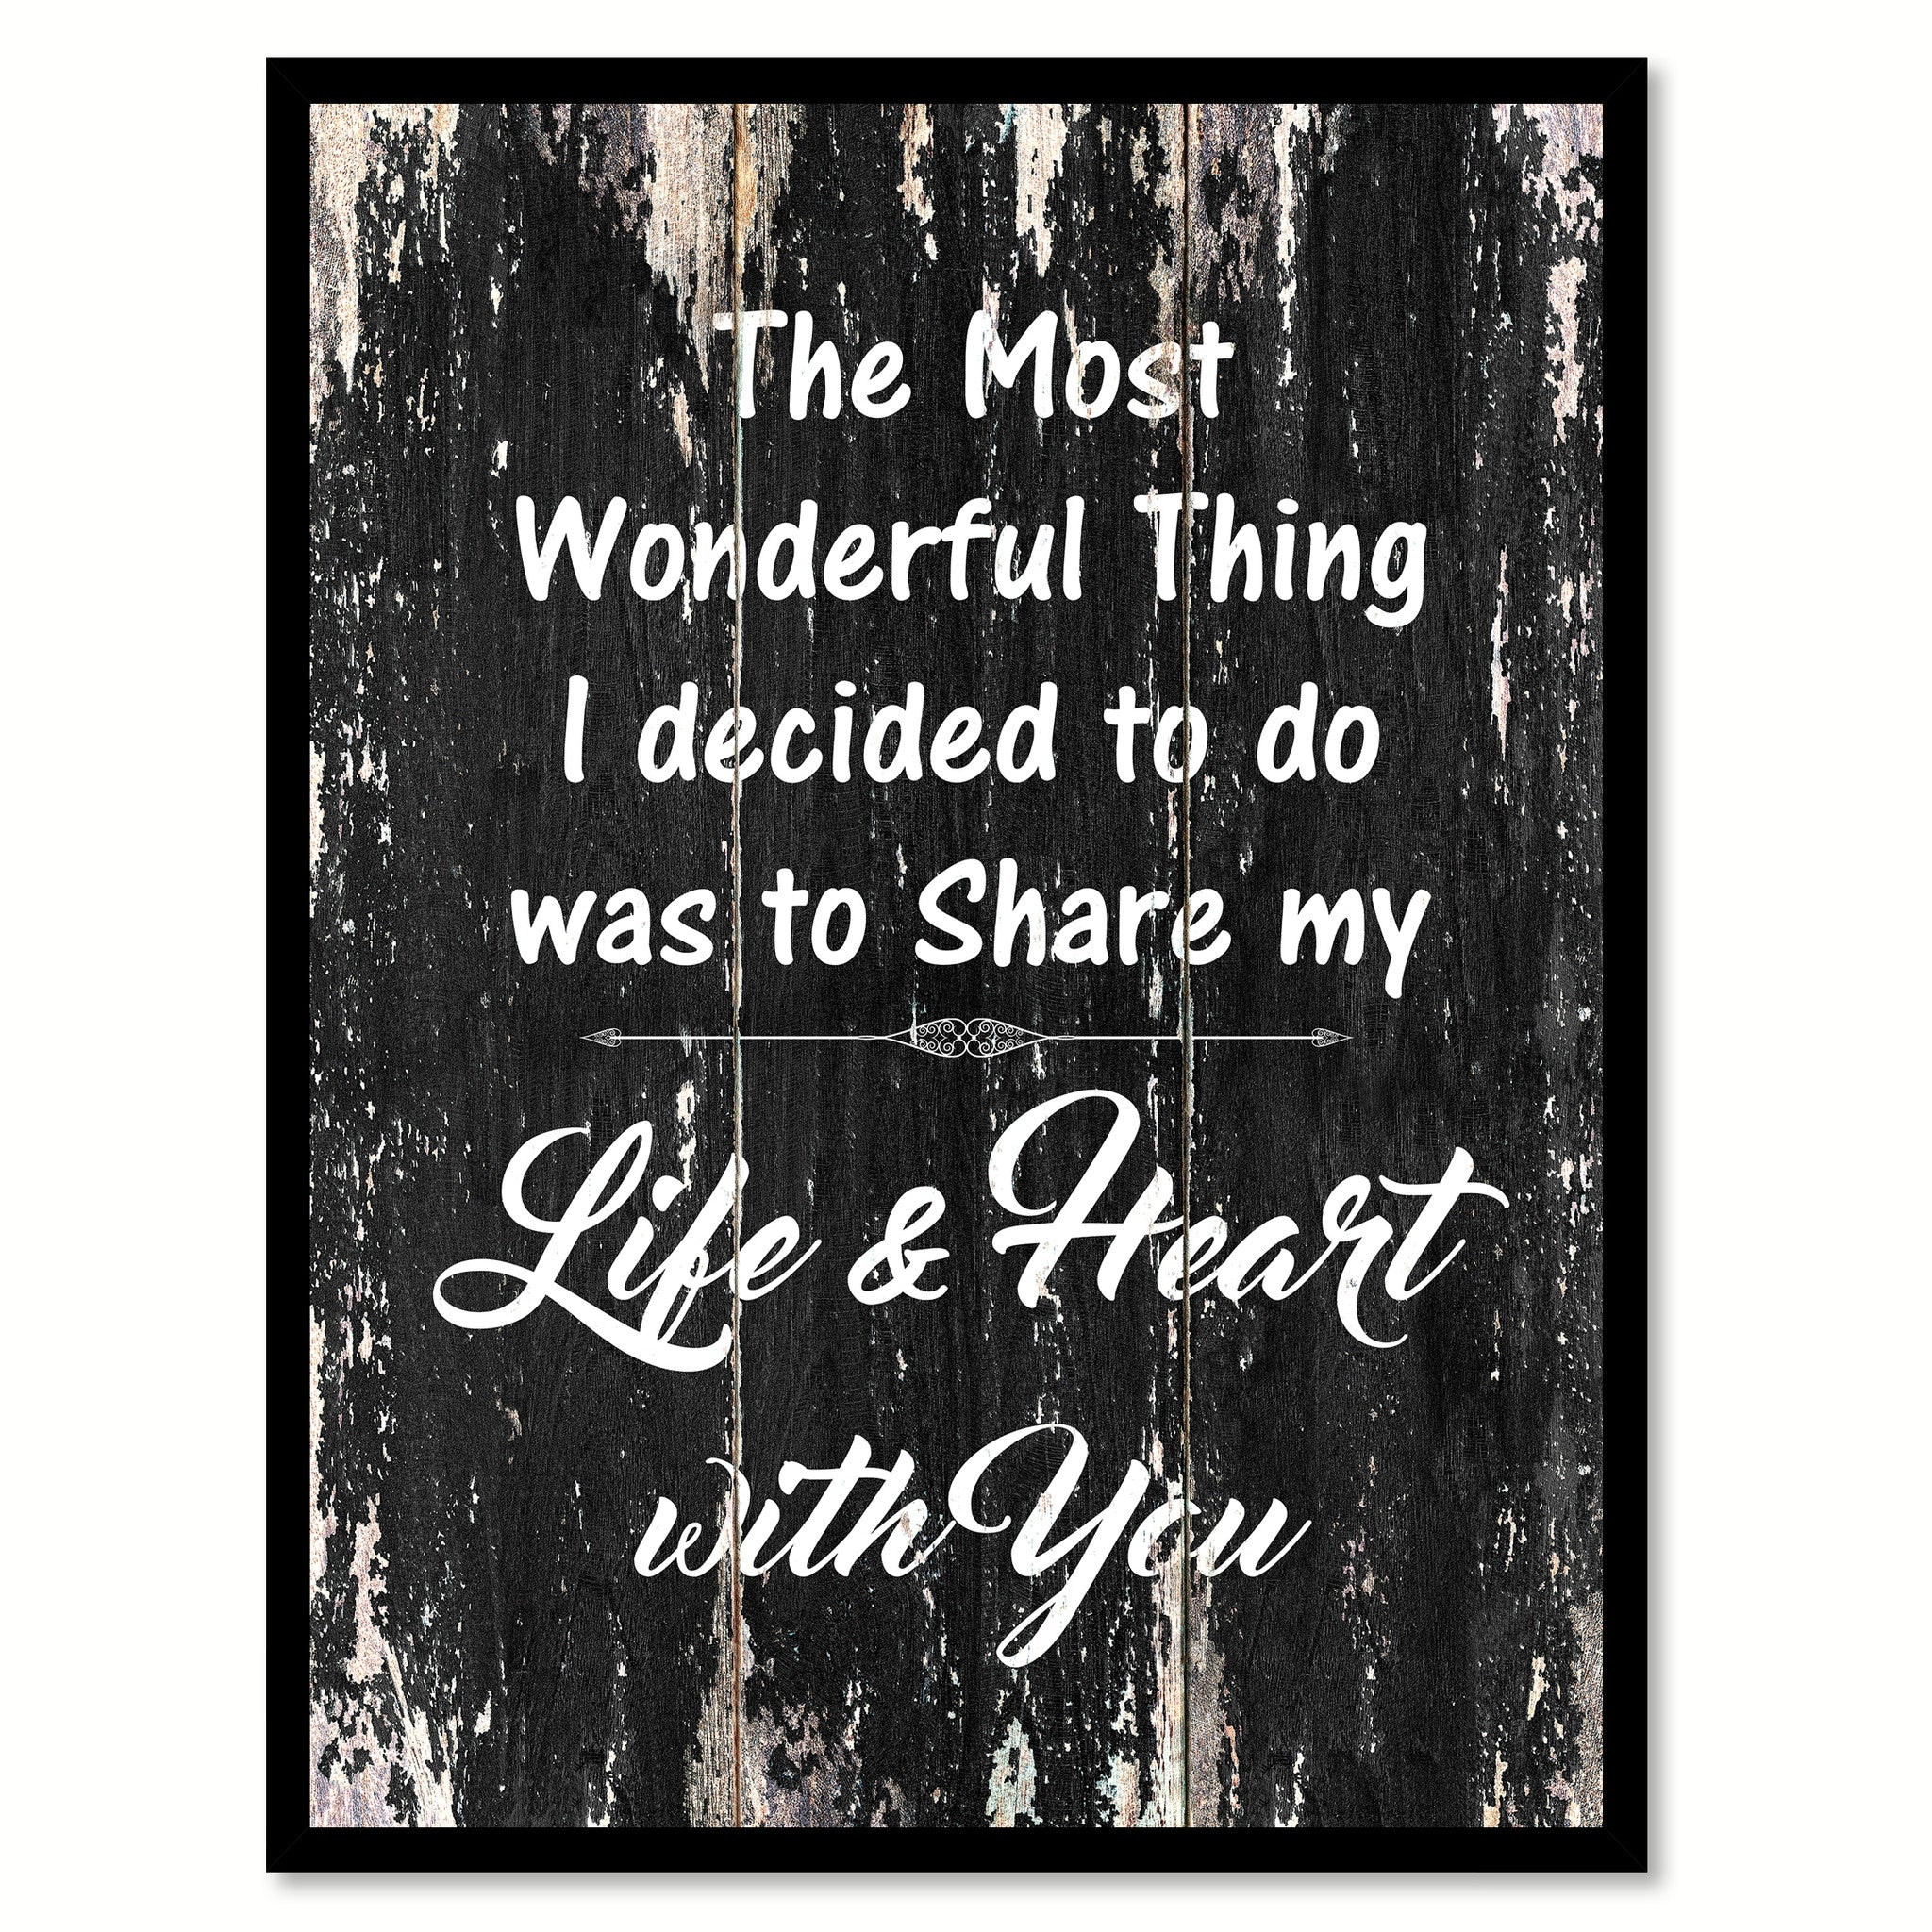 The Most Wonderful Thing I Decided To Do Was To Share My Life